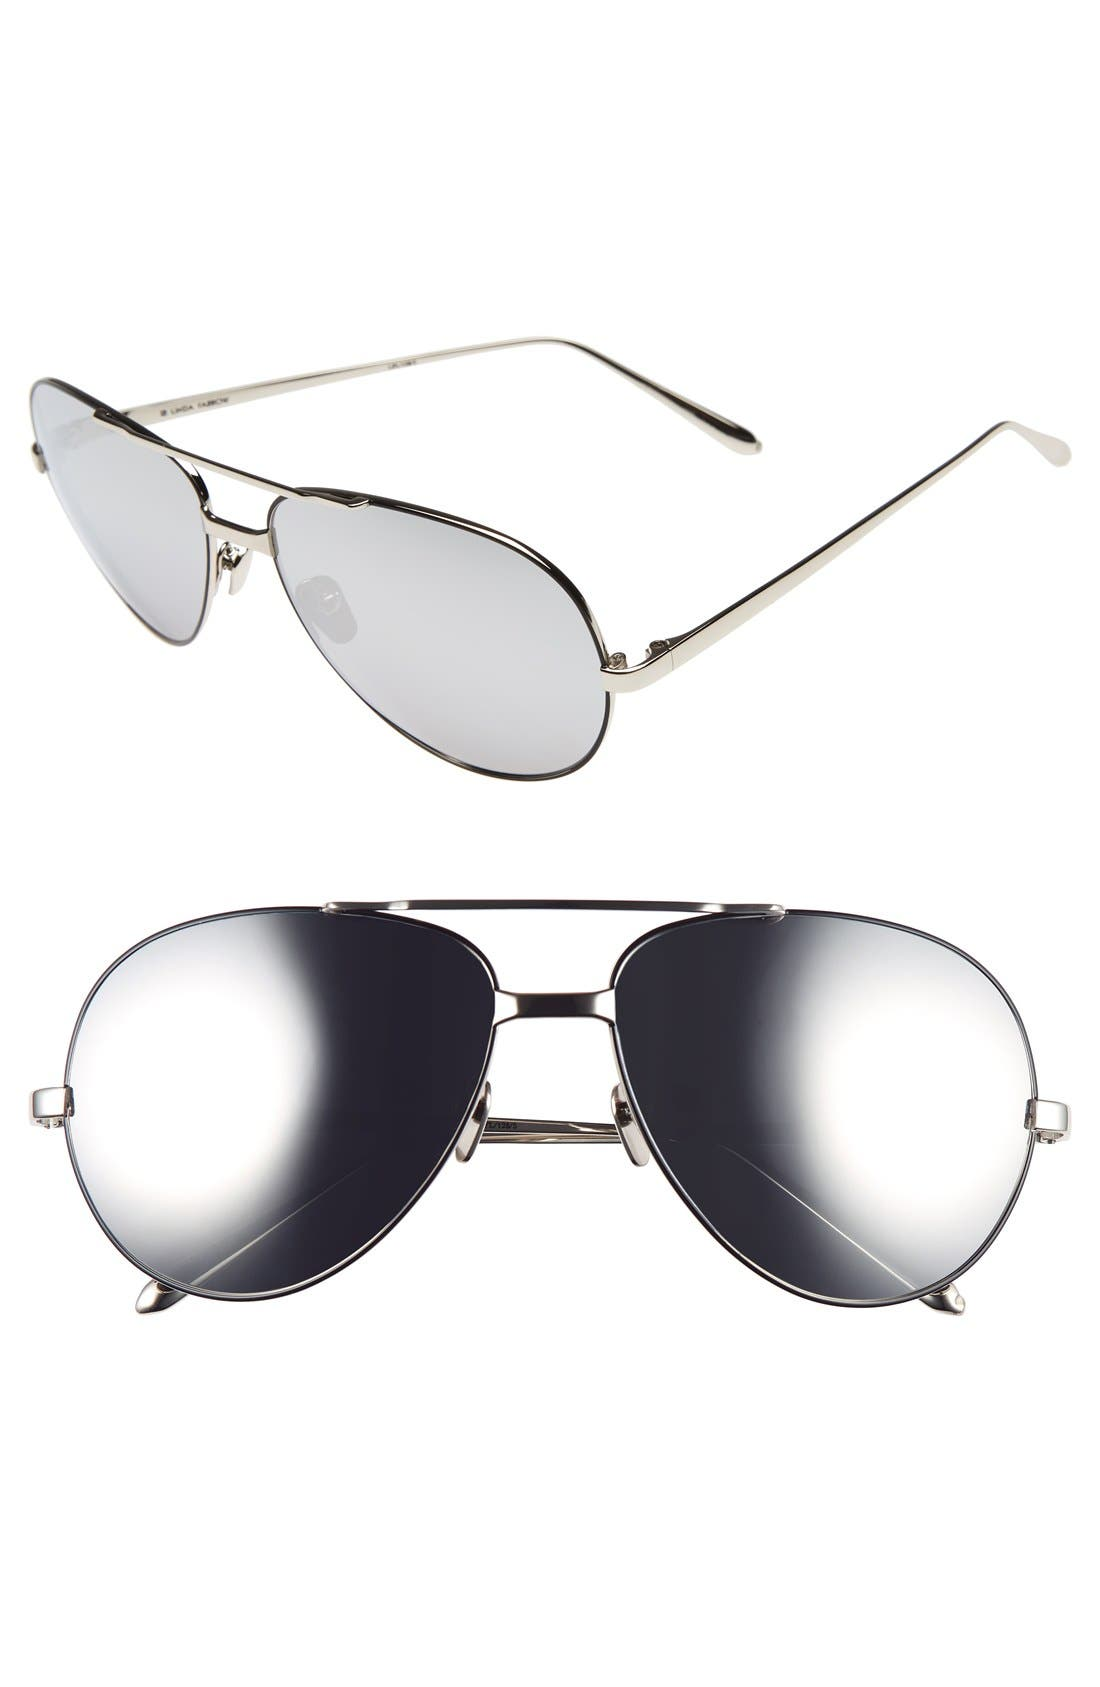 59mm 18 Karat White Gold Trim Aviator Sunglasses,                         Main,                         color, White Gold/ Black/ Platinum